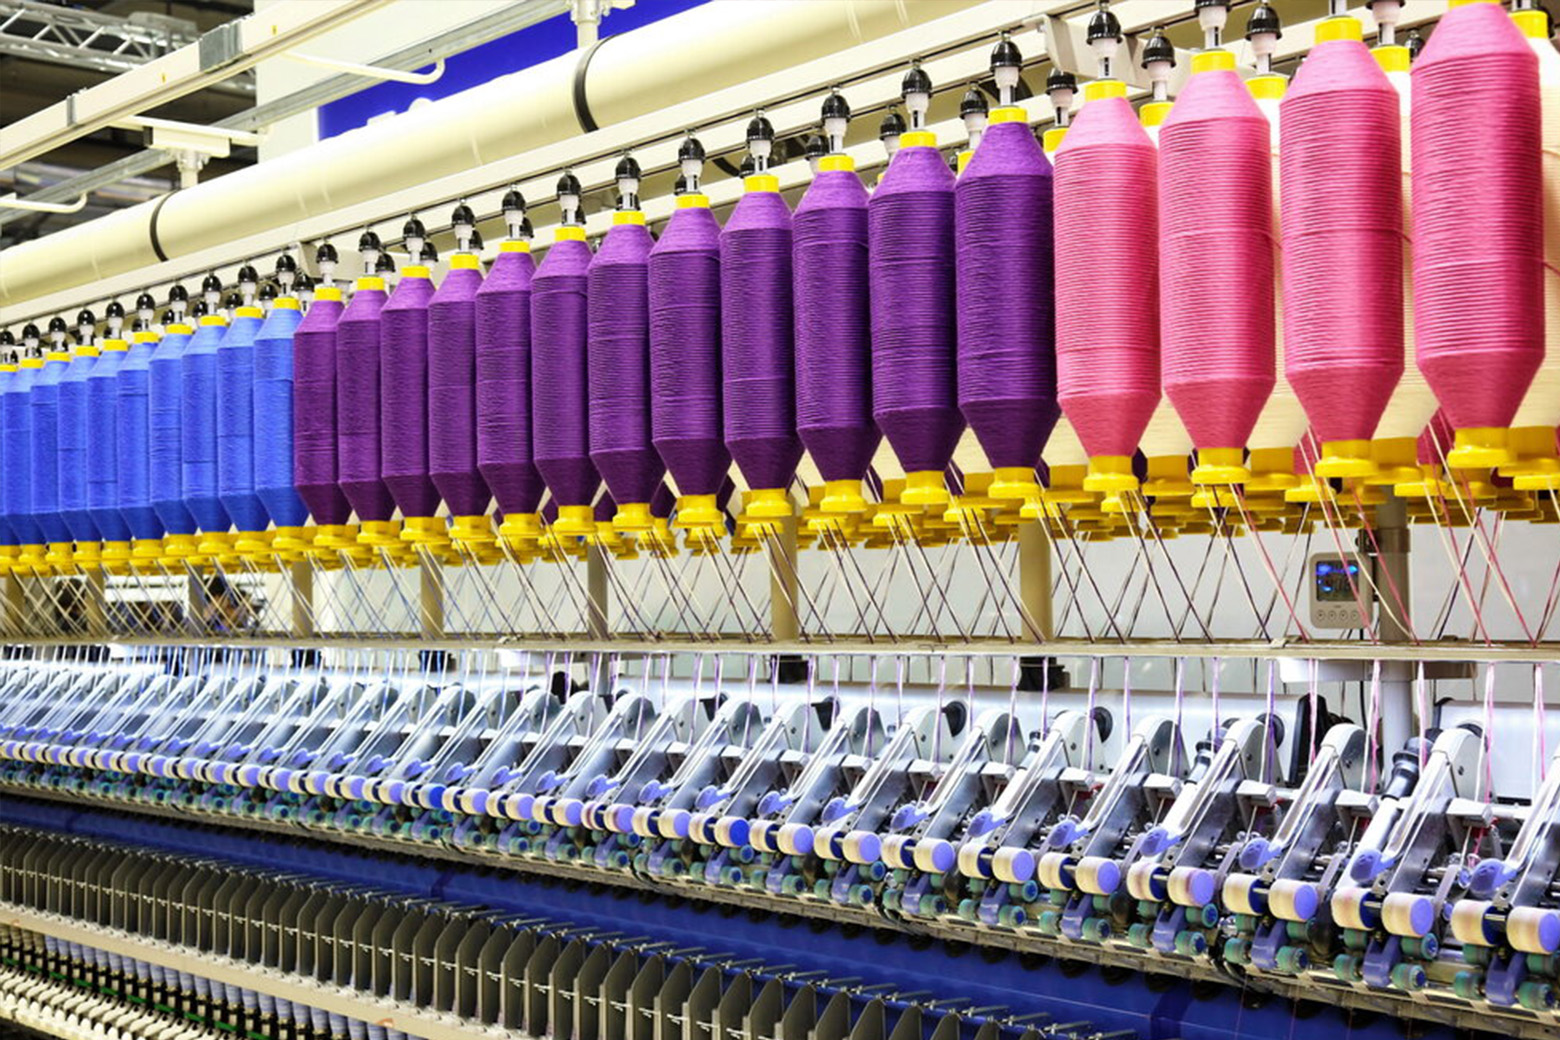 The difference between quick-drying fabric and polyester